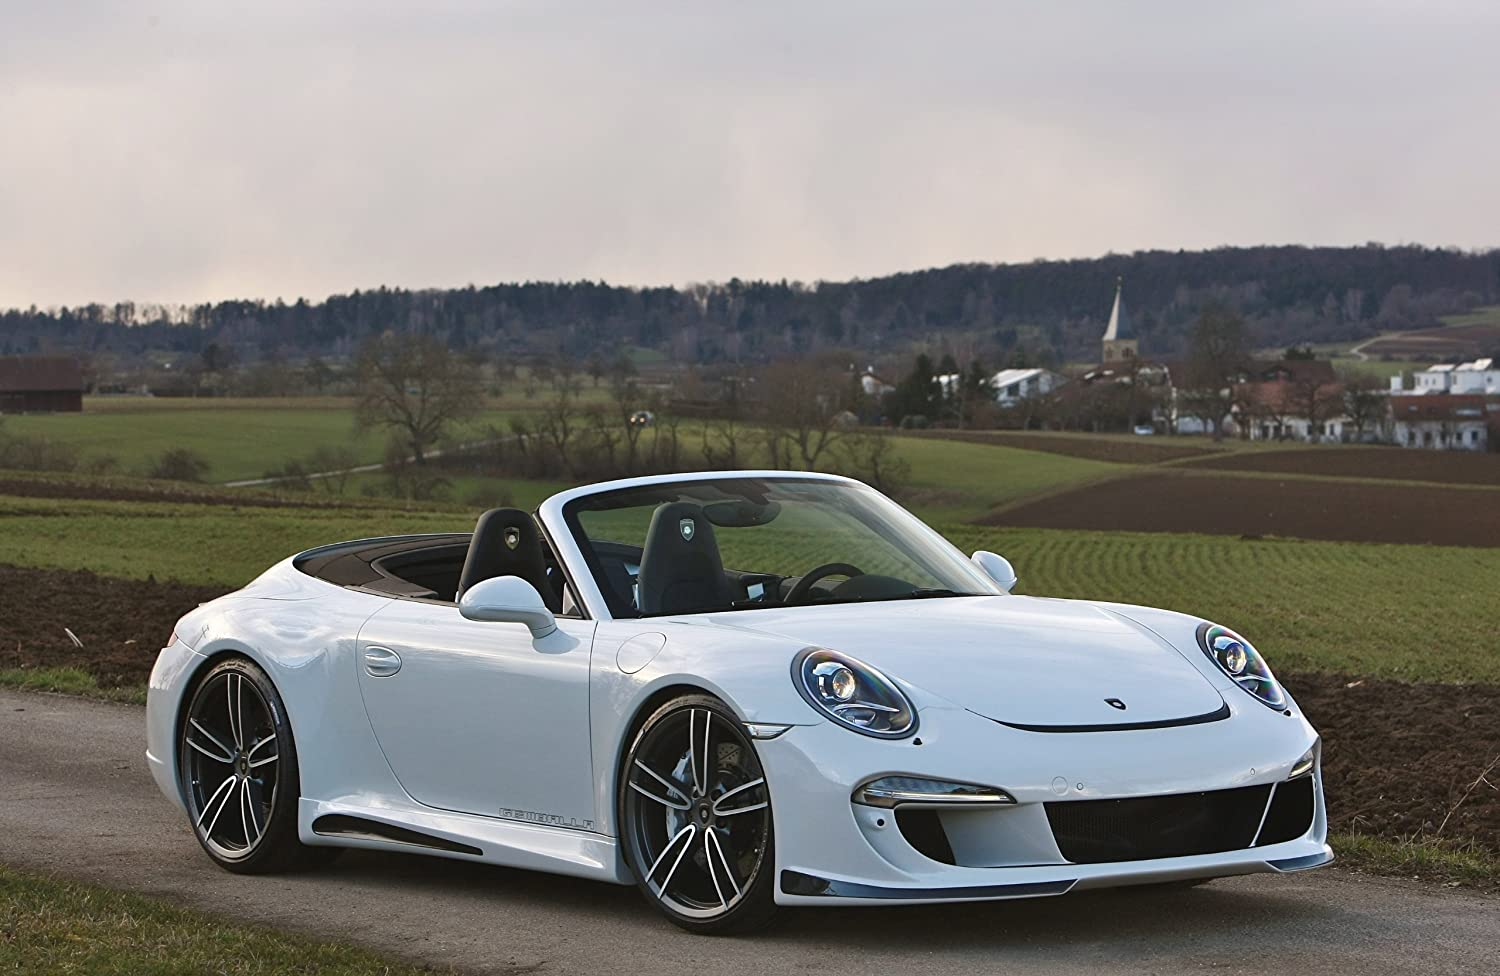 Amazon.com: Porsche 911 Gemballa Carrera S Cabriolet (2013) Car Art Poster Print on 10 mil Archival Satin Paper White Front Side View 16